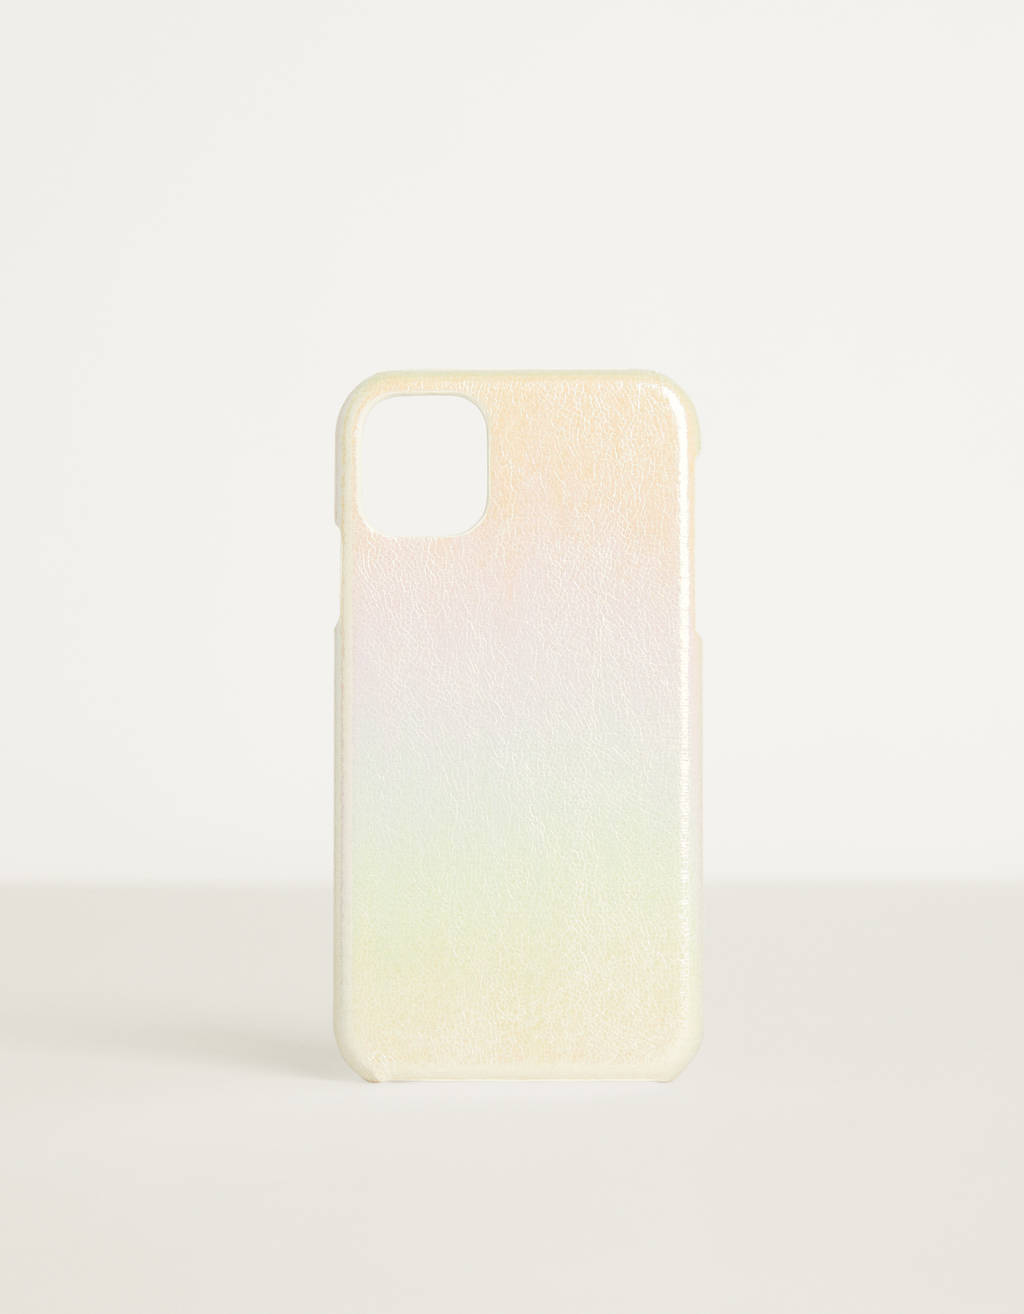 Iridescent iPhone 11 case